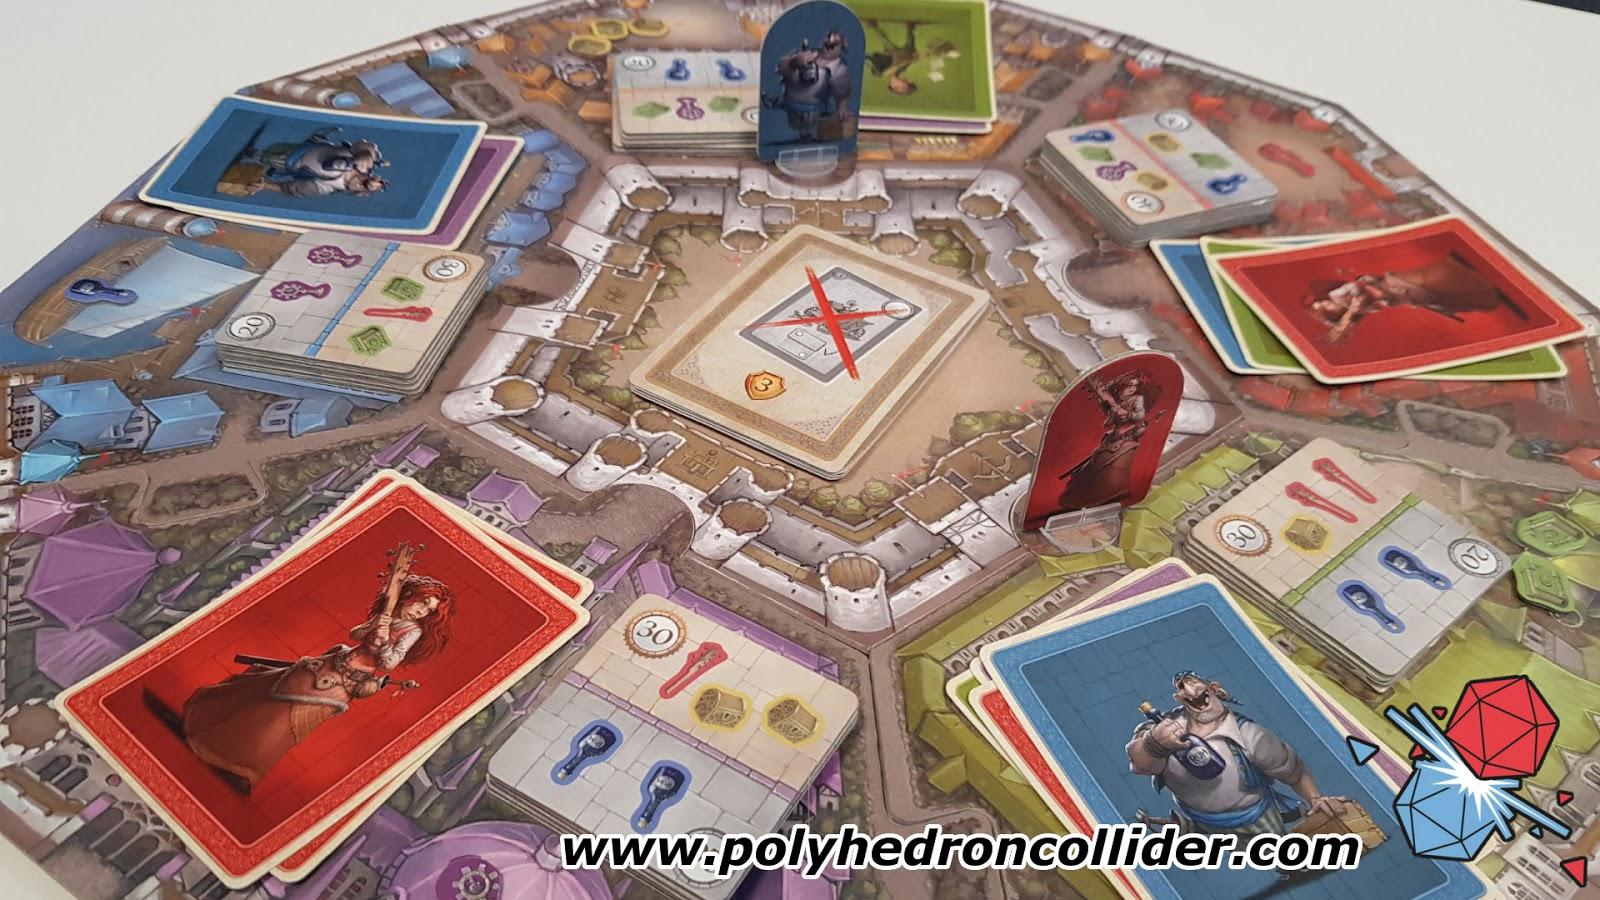 Polyhedron Collider Slyville Board Game Review - In Play from Above